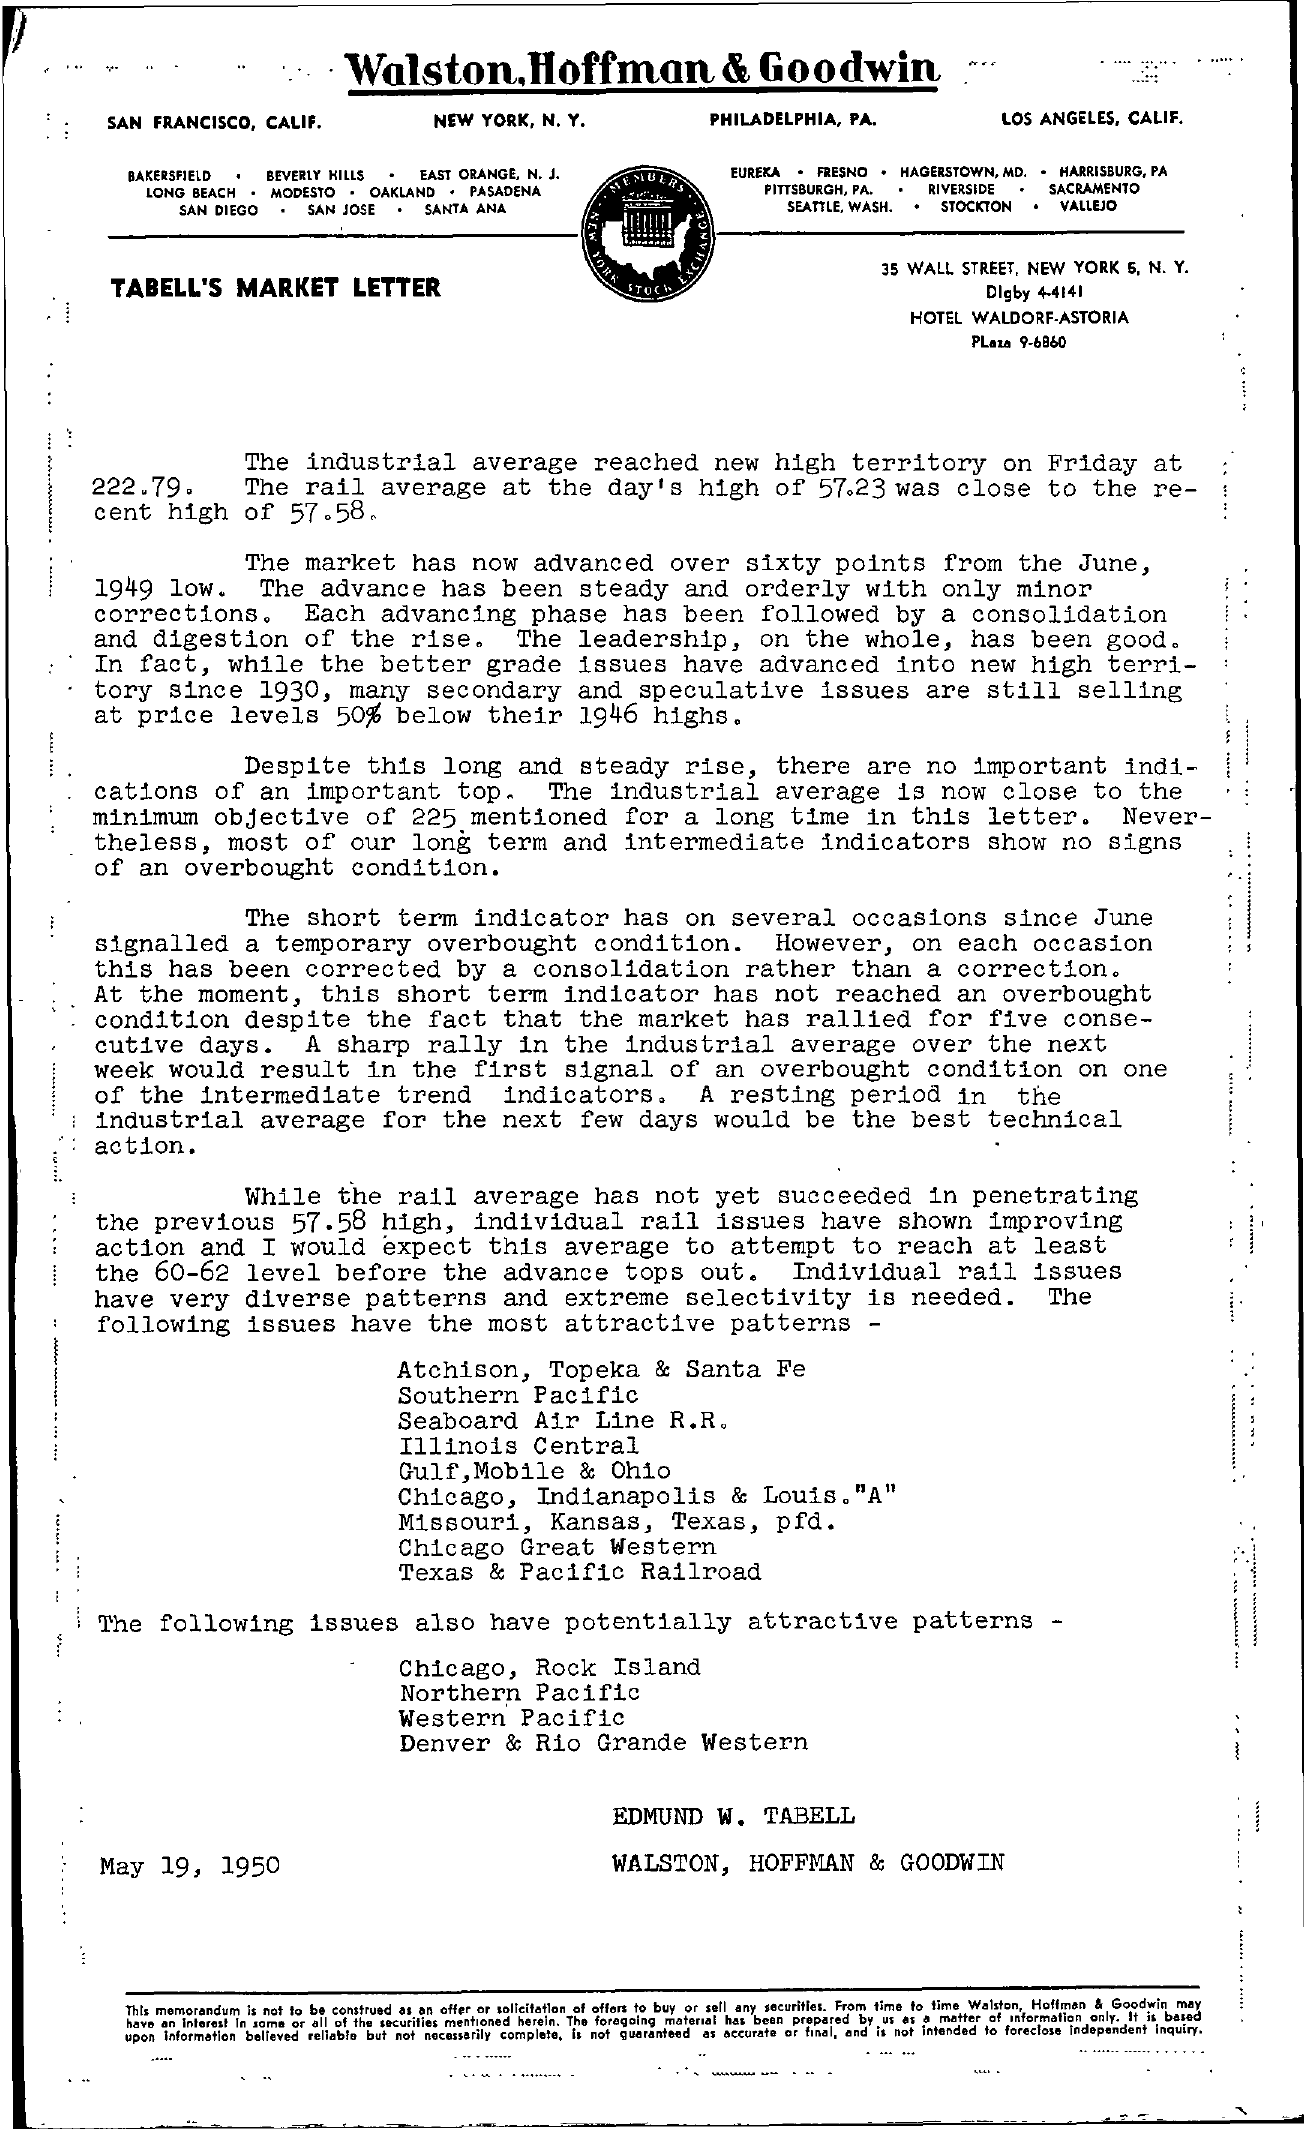 Tabell's Market Letter - May 19, 1950